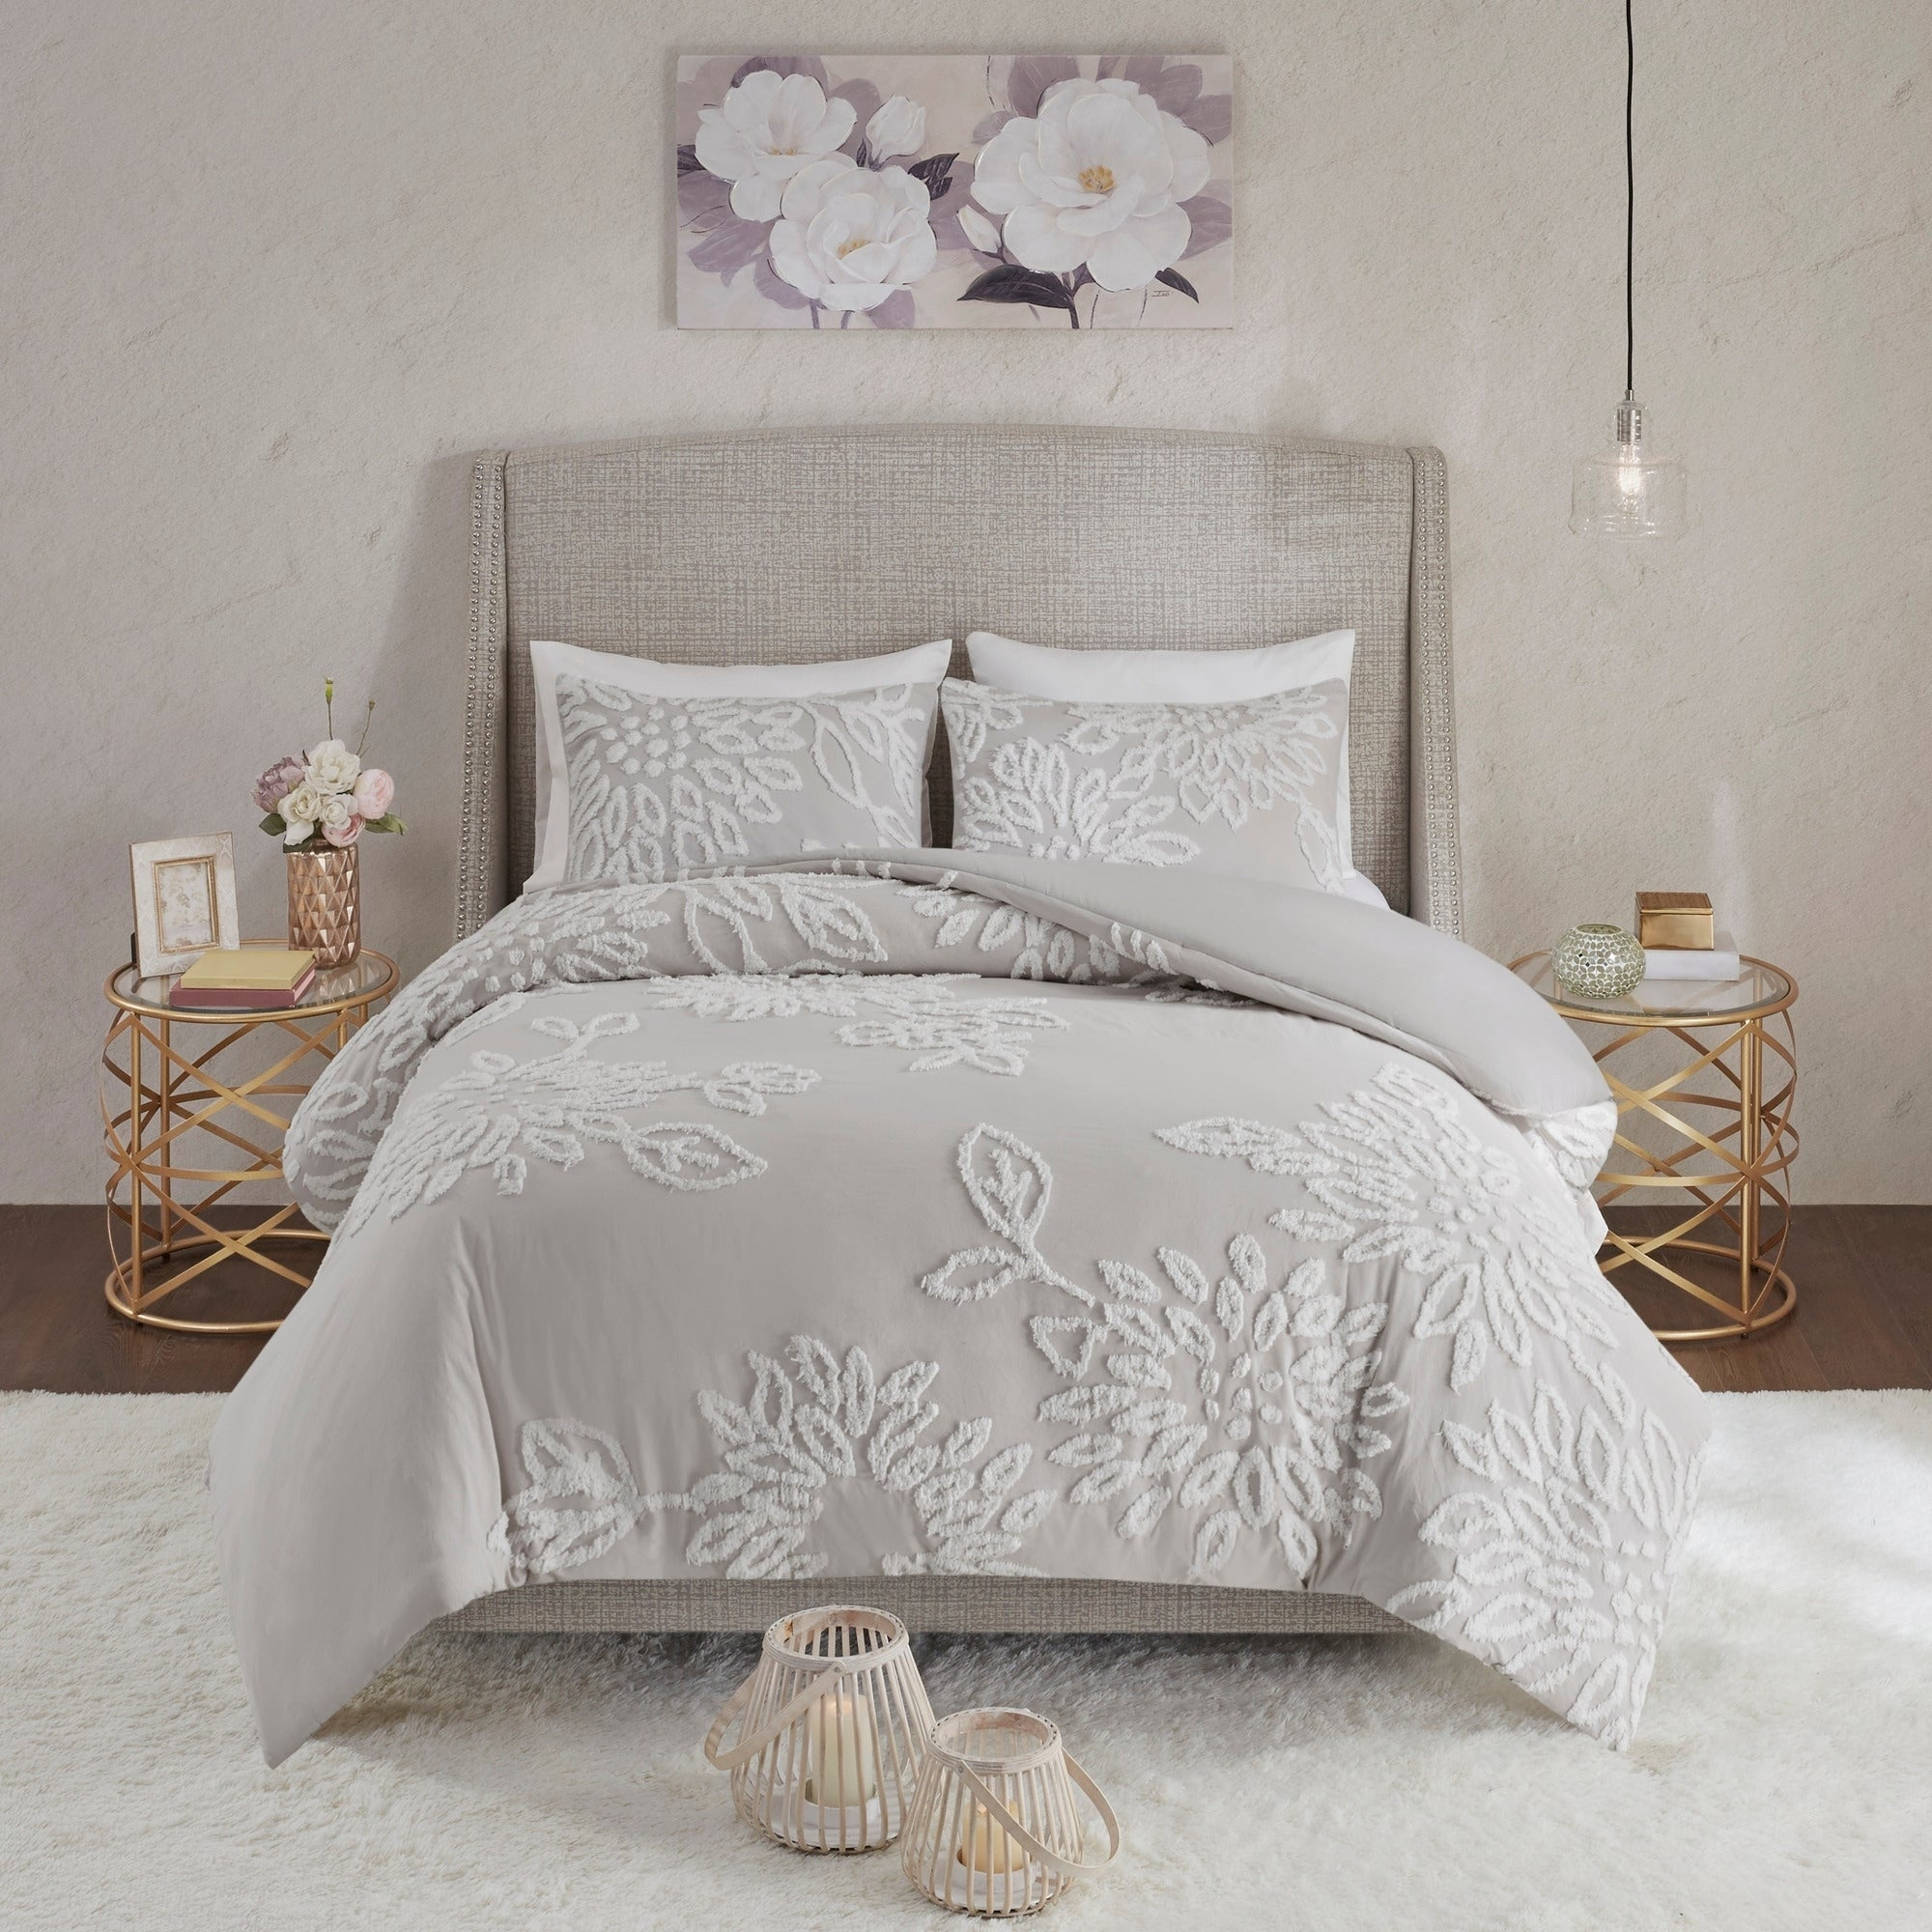 Madison Park Pansy Grey White Tufted Cotton Chenille Floral Comforter Set On Sale Overstock 28501529